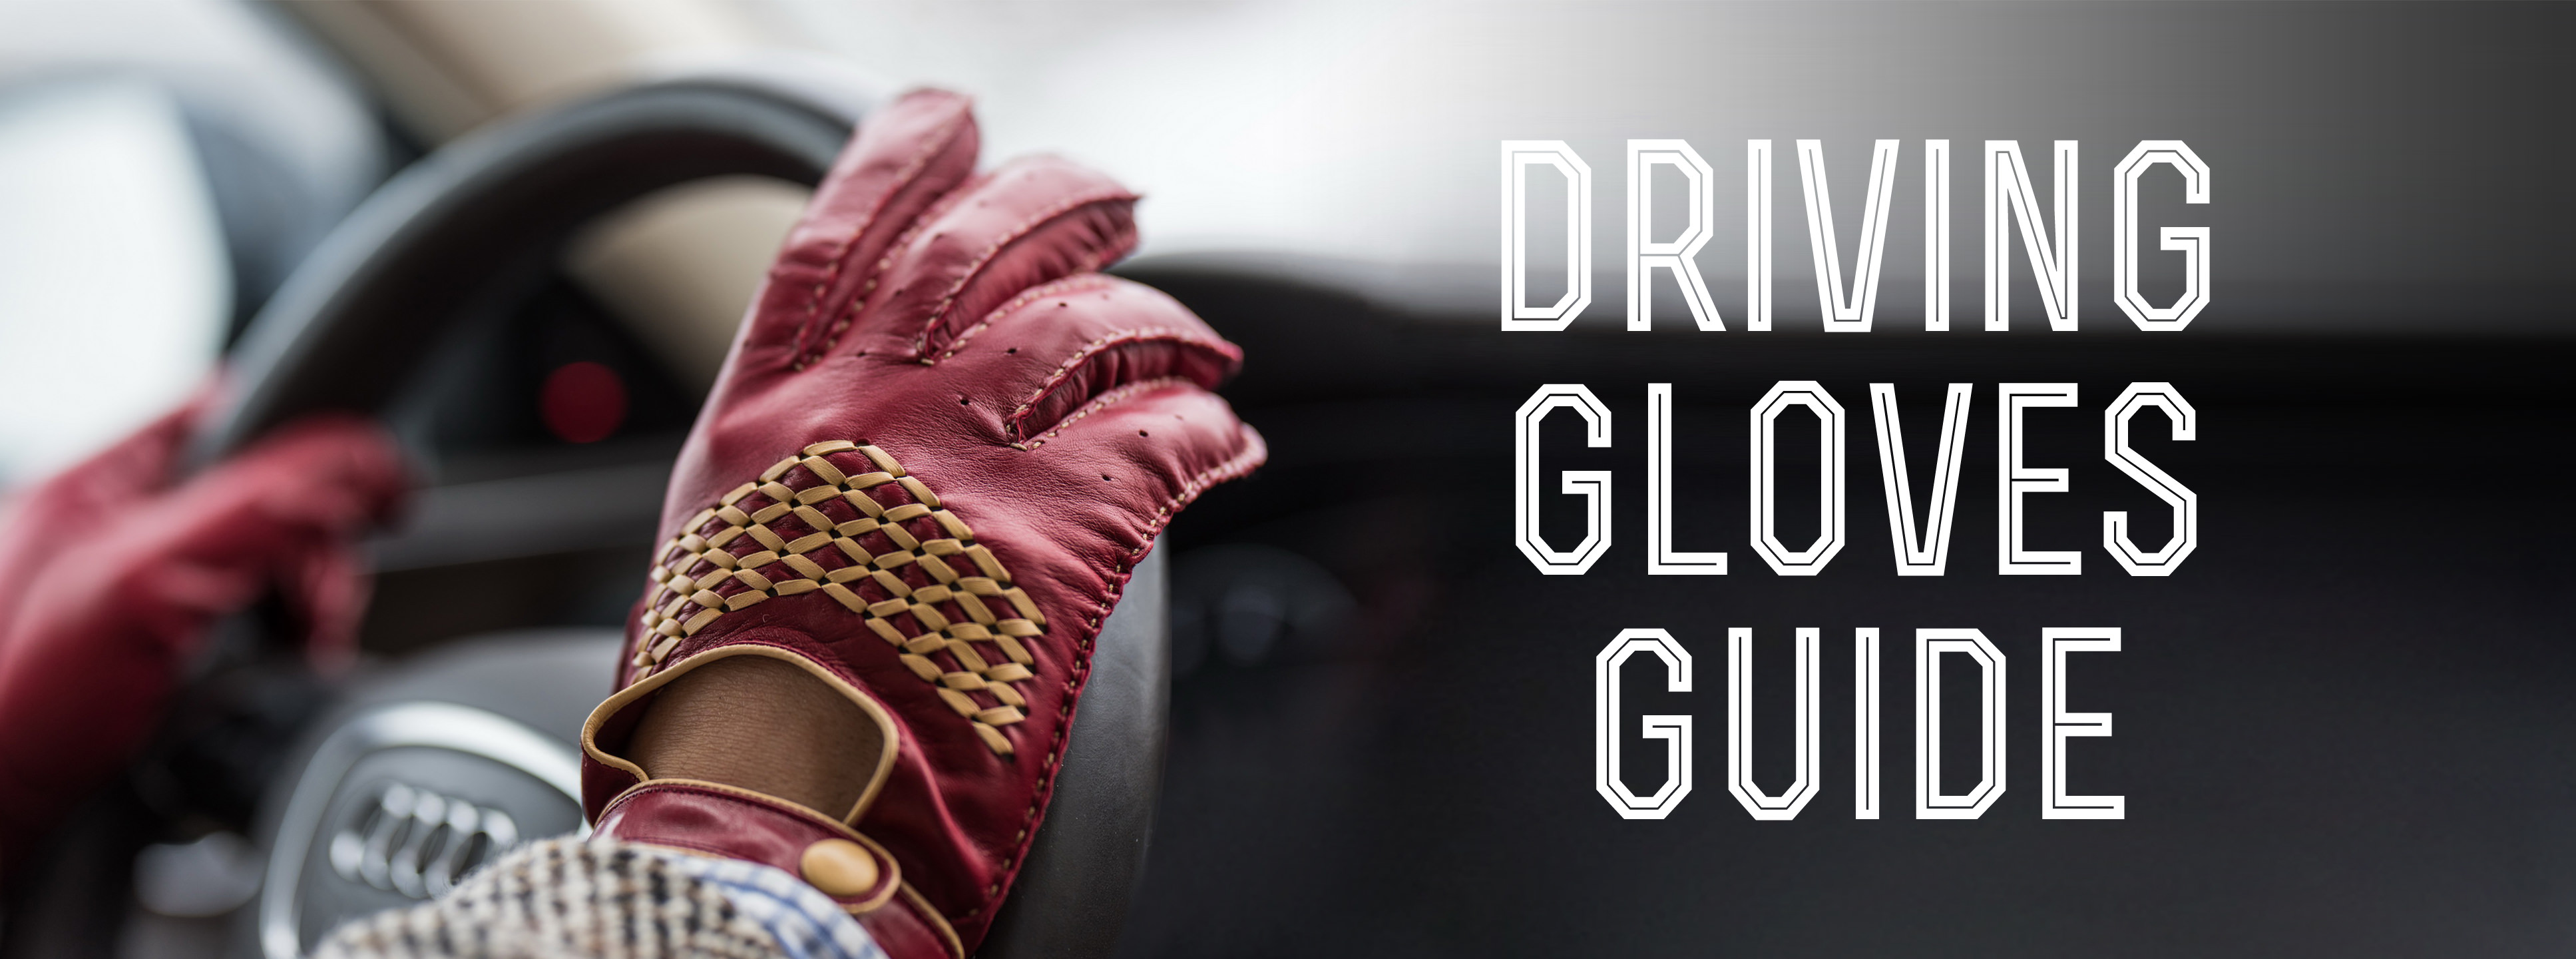 Driving gloves youtube - Driving Gloves Guide